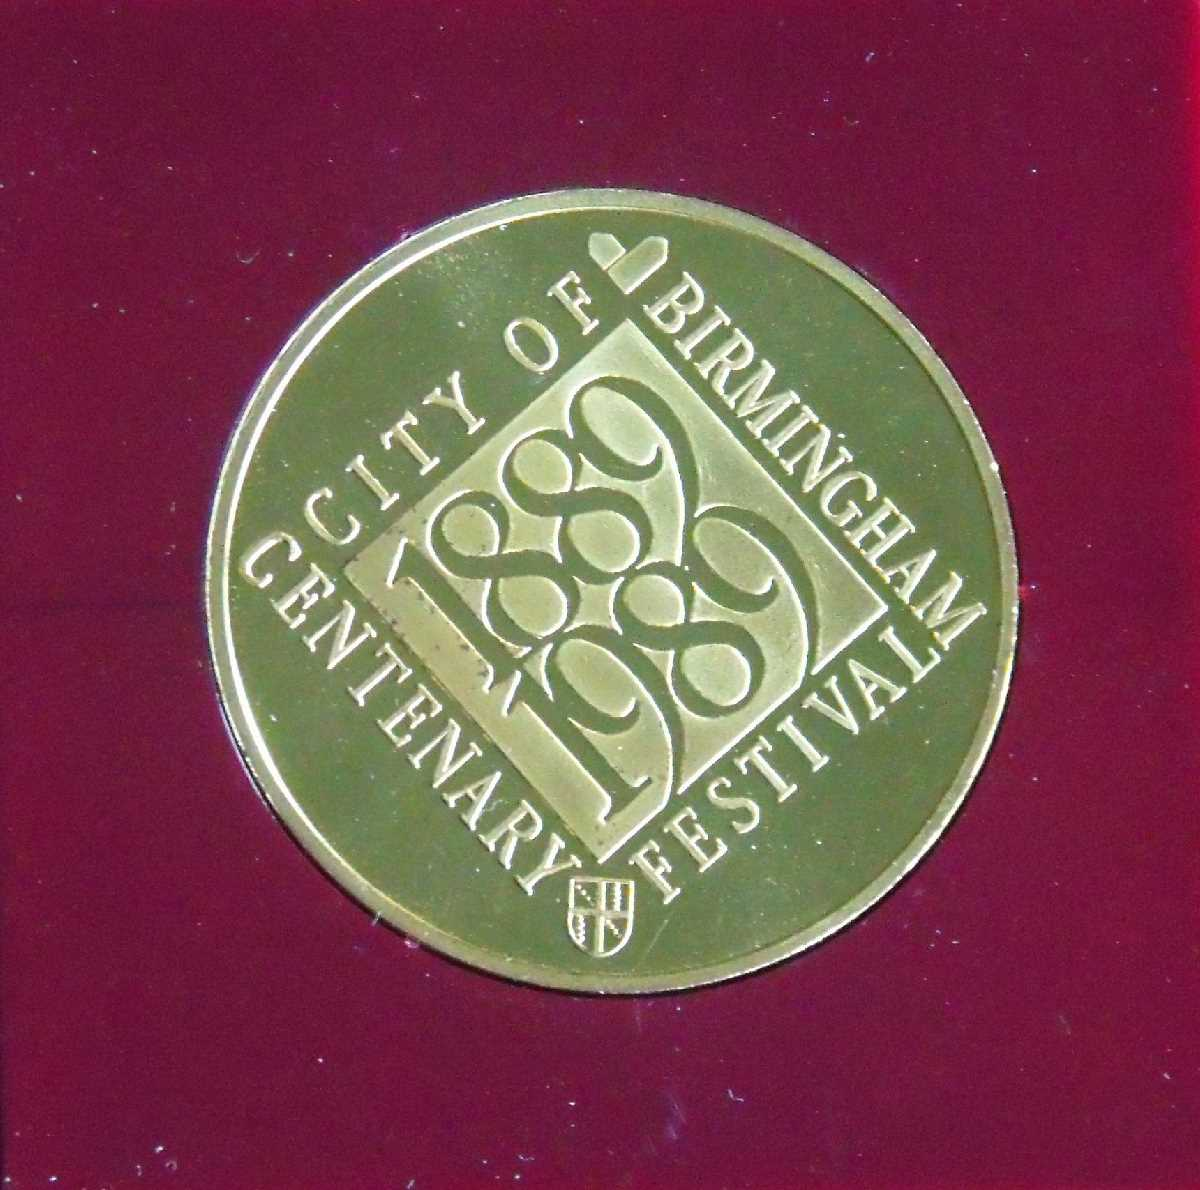 City of Birmingham Centenary 1889 1989 souvenir medallion